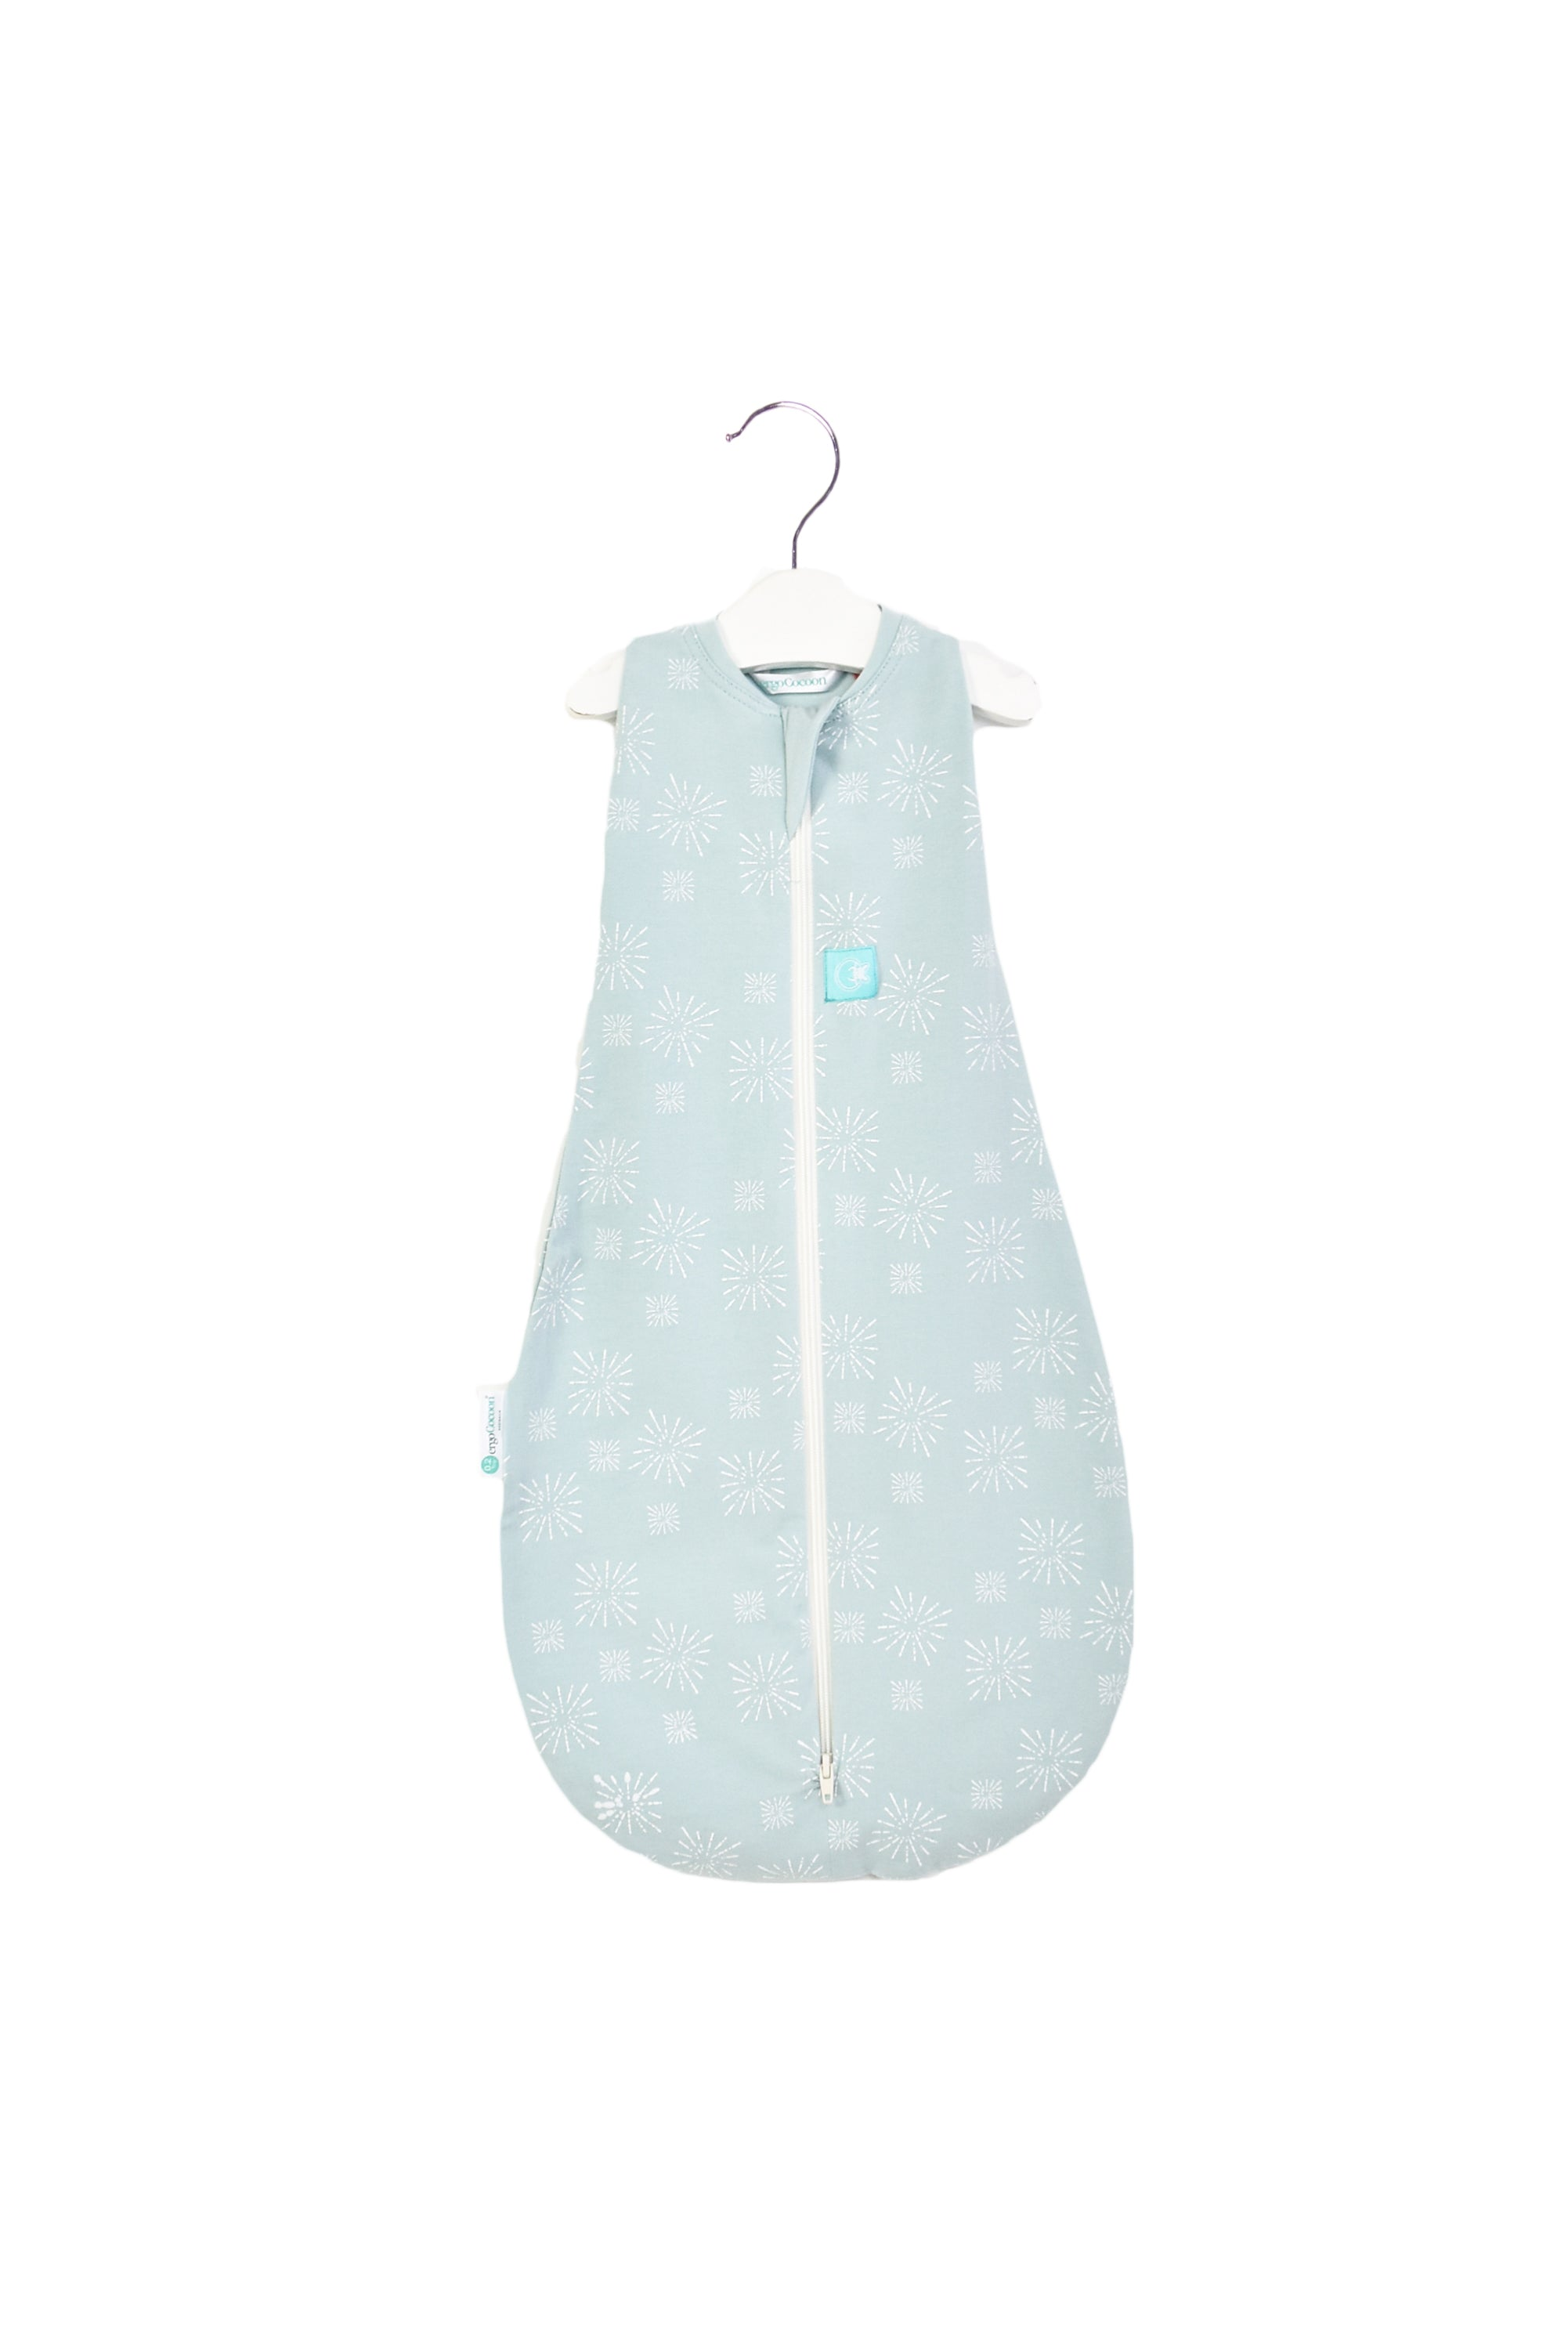 10013145 ErgoPouch Baby ~ Sleepsac 0-3M (0.2 TOG) at Retykle